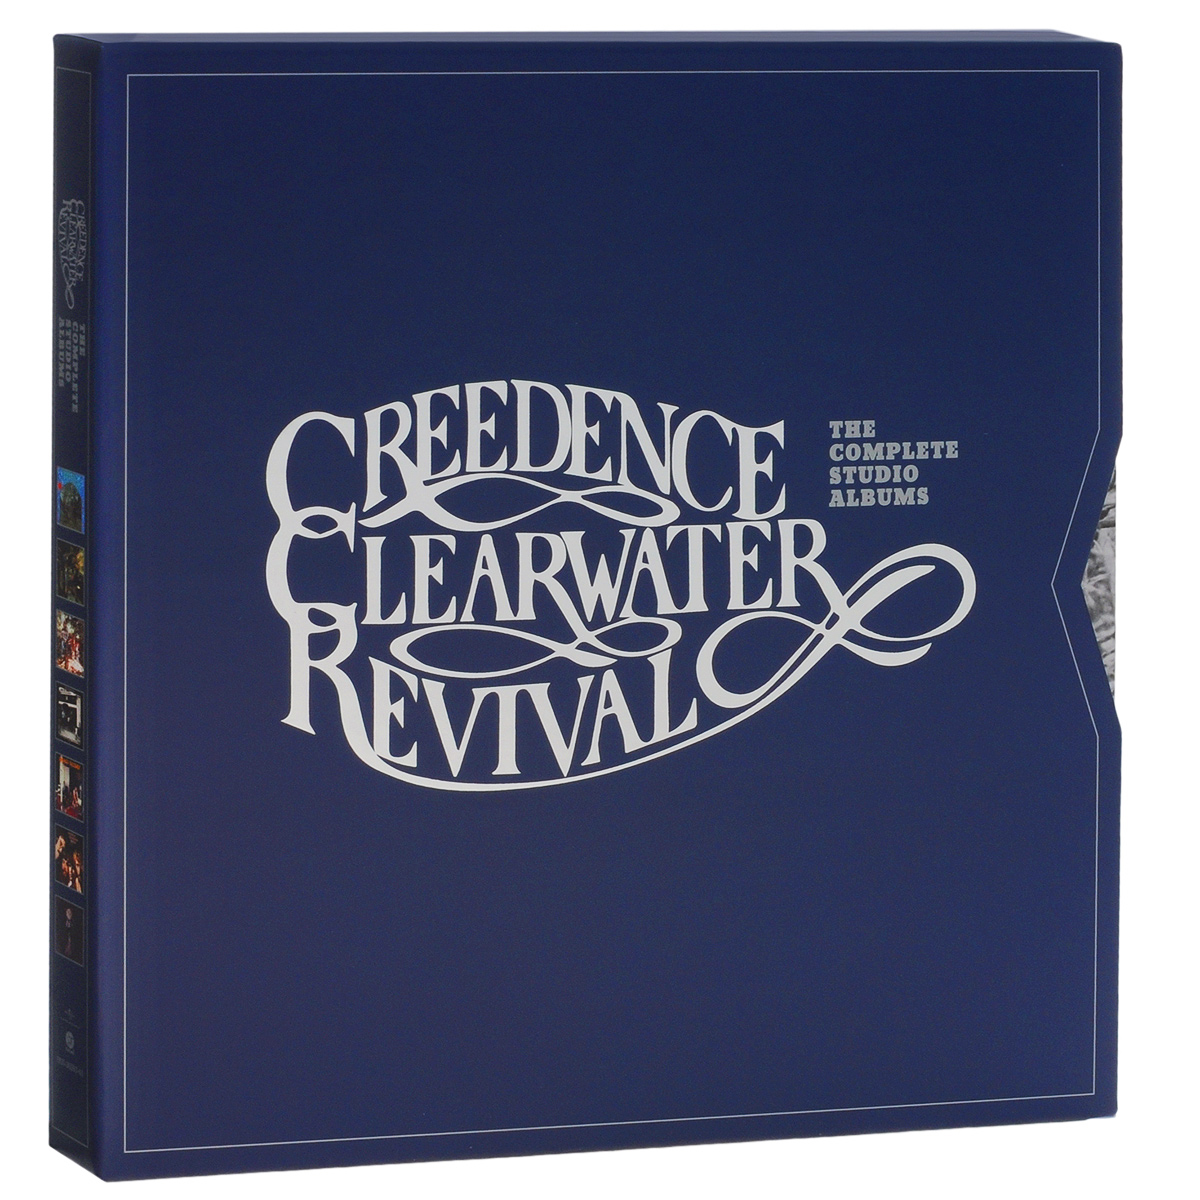 Creedence Clearwater Revival Creedence Clearwater Revival. The Complete Studio Albums (7 LP) high quality bare lamp poa lmp115 for sanyo lp xu88 lp xu88w plc xu75 plc xu78 with japan phoenix original lamp burner